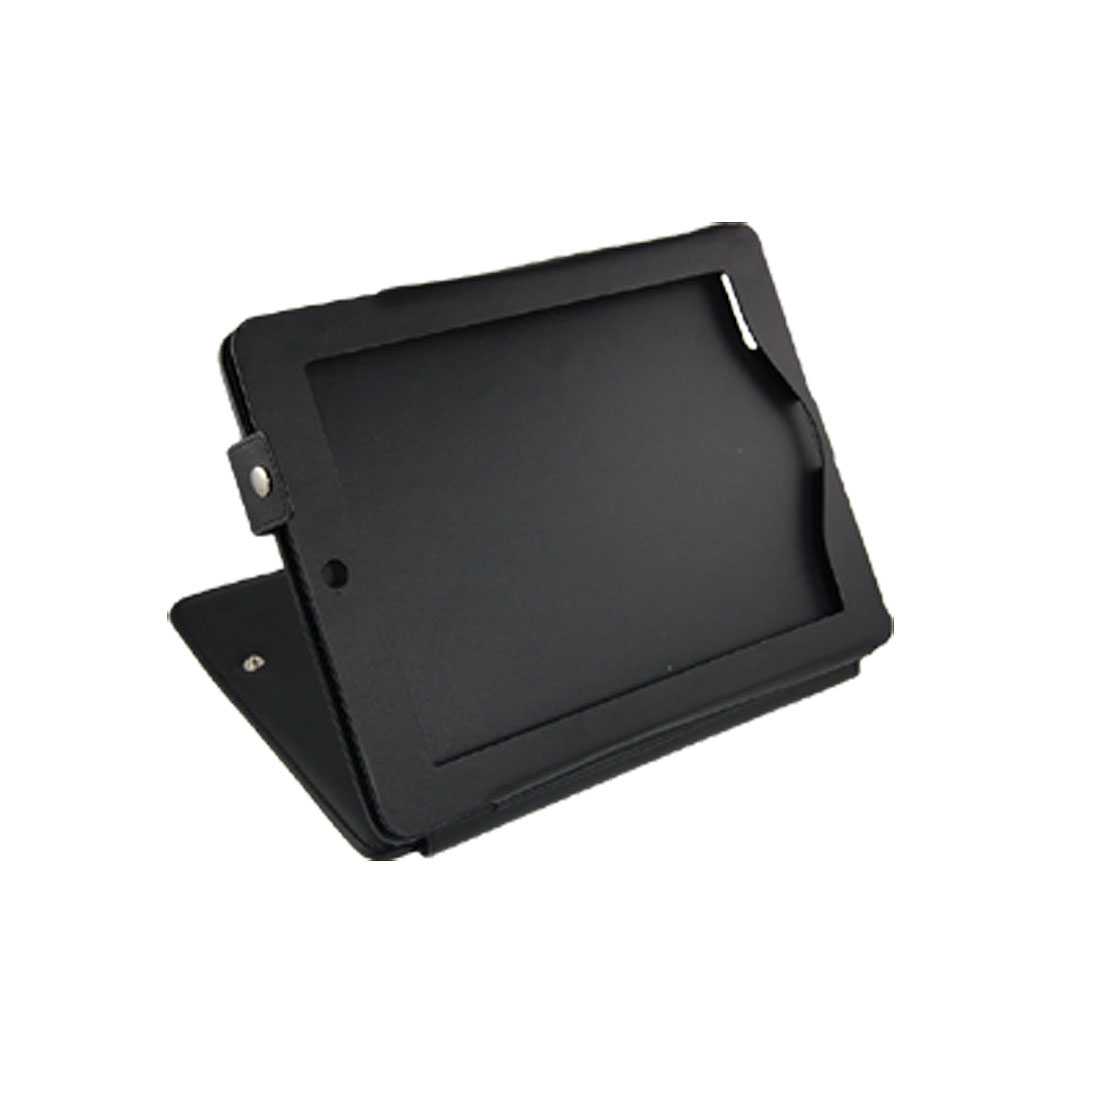 Black Stitch Trim Faux Leather Stand Cover for iPad 2G